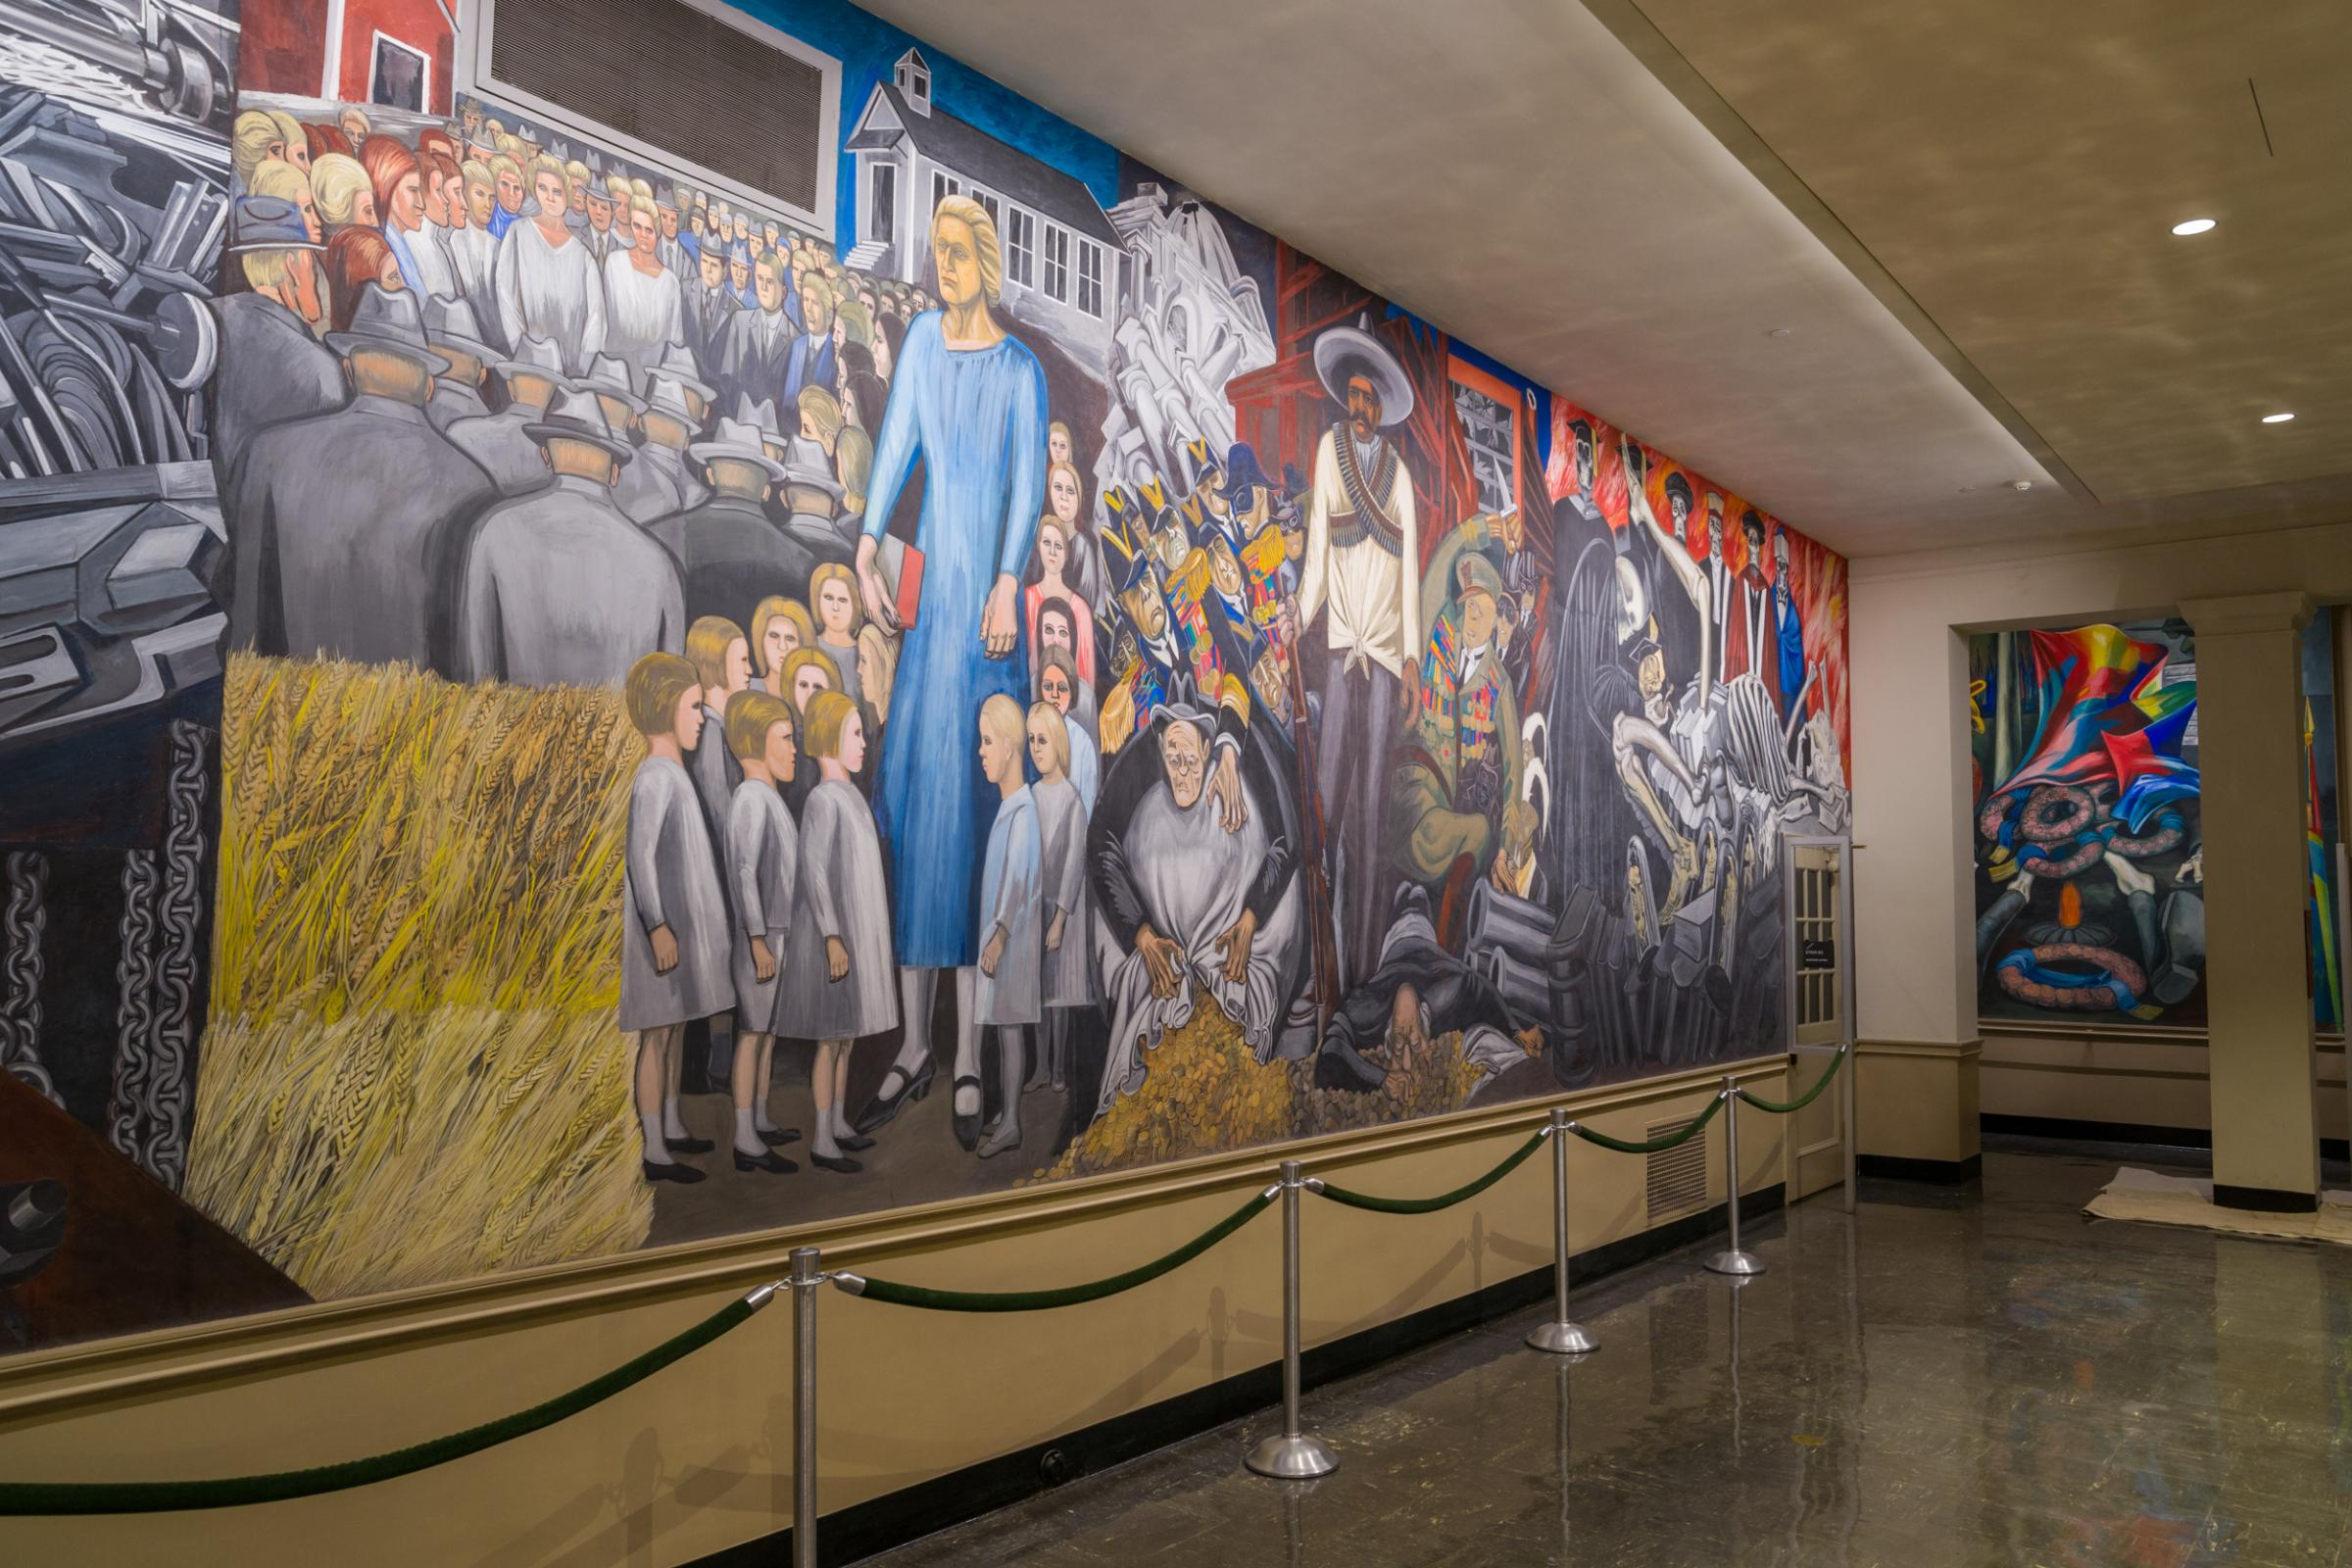 Dartmouth murals become national historic landmark new for Dartmouth mural